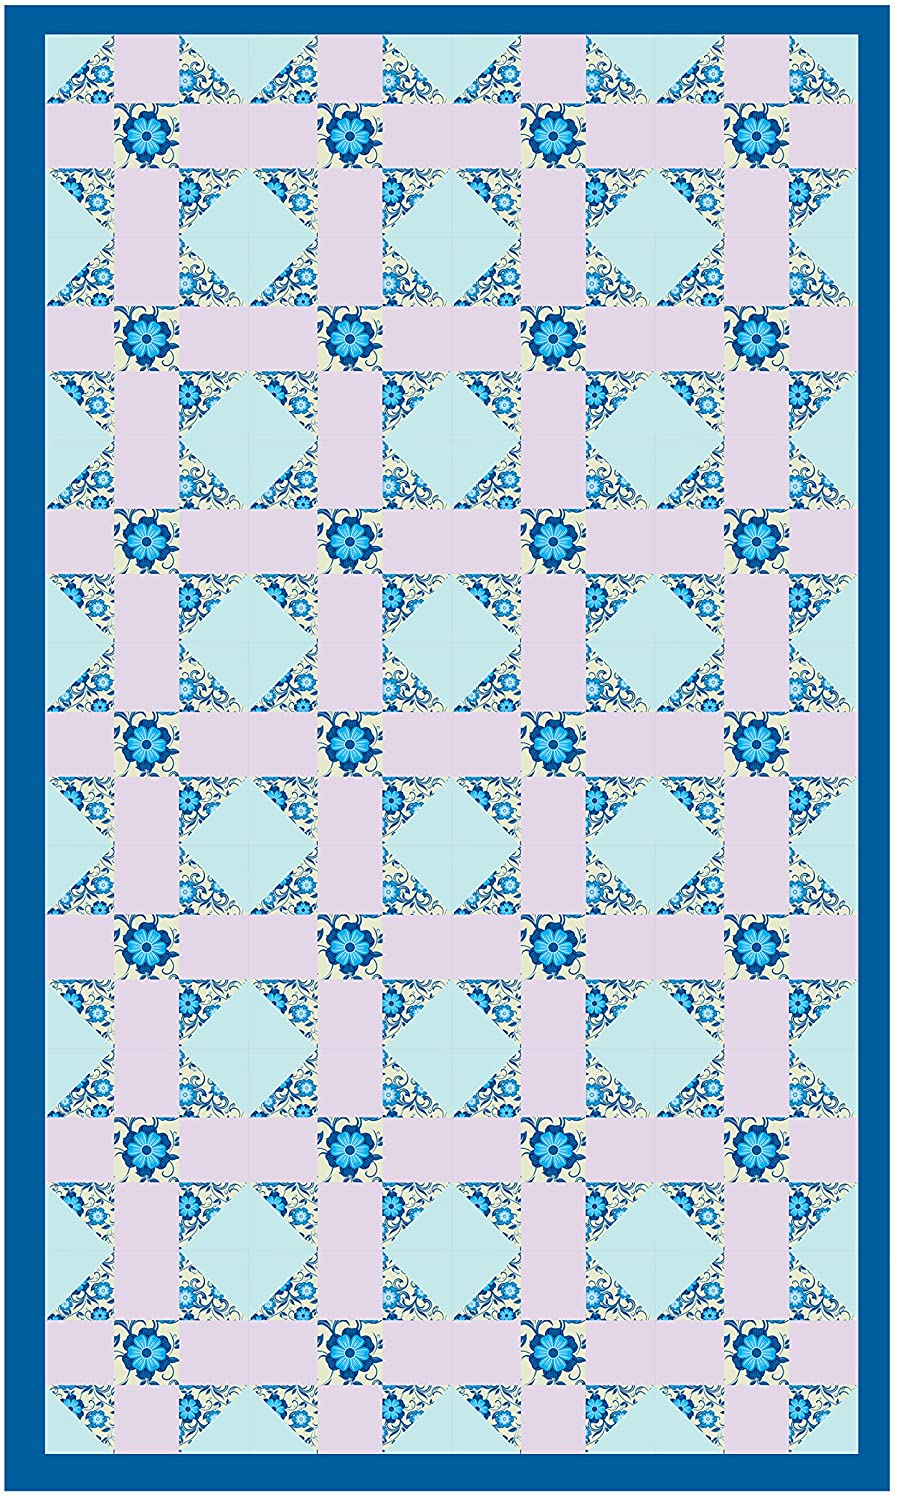 Blue Floral quilting kit quilt panel 12.5 x 12.5 patchwork cotton printed fabric using organic ink